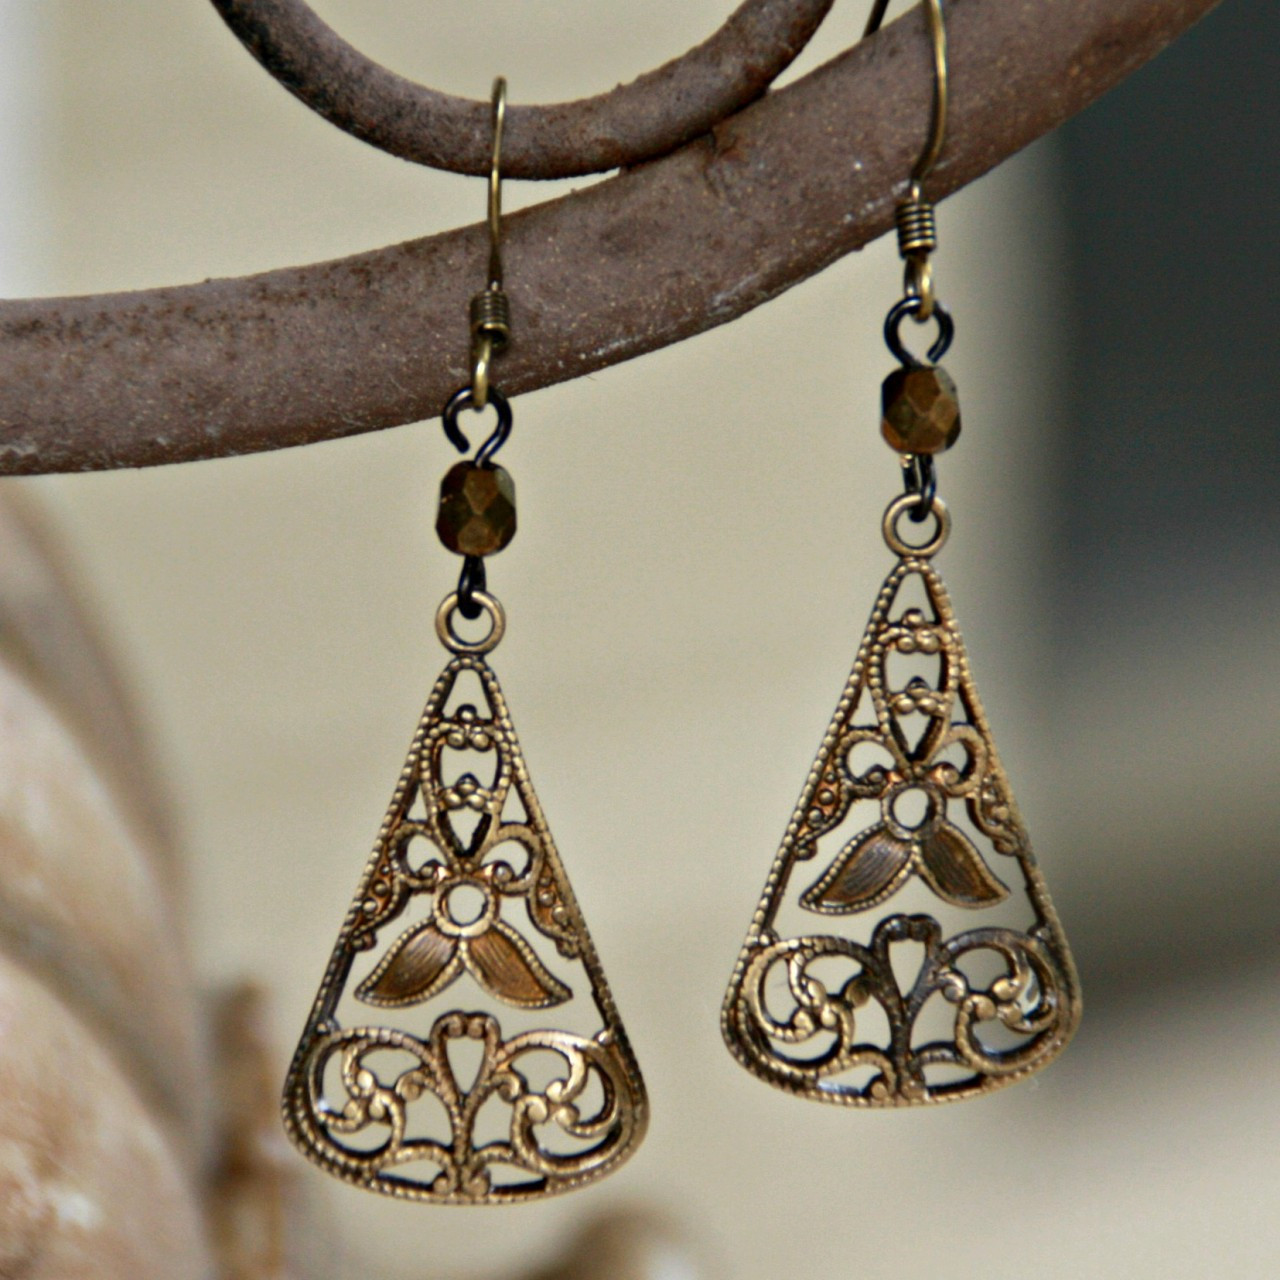 ART-212E Matching Old World Earrings to ART Collection Necklace